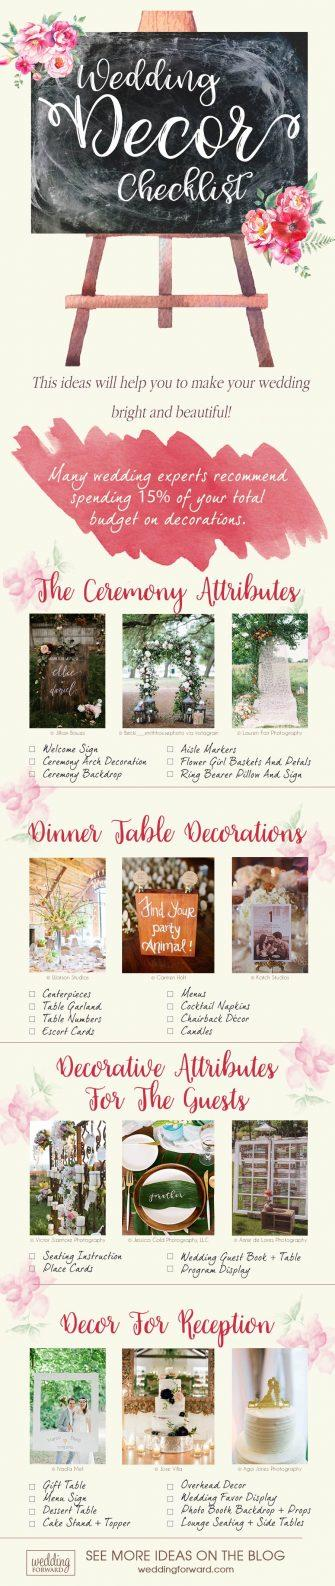 wedding decor ideas wedding decor checklist